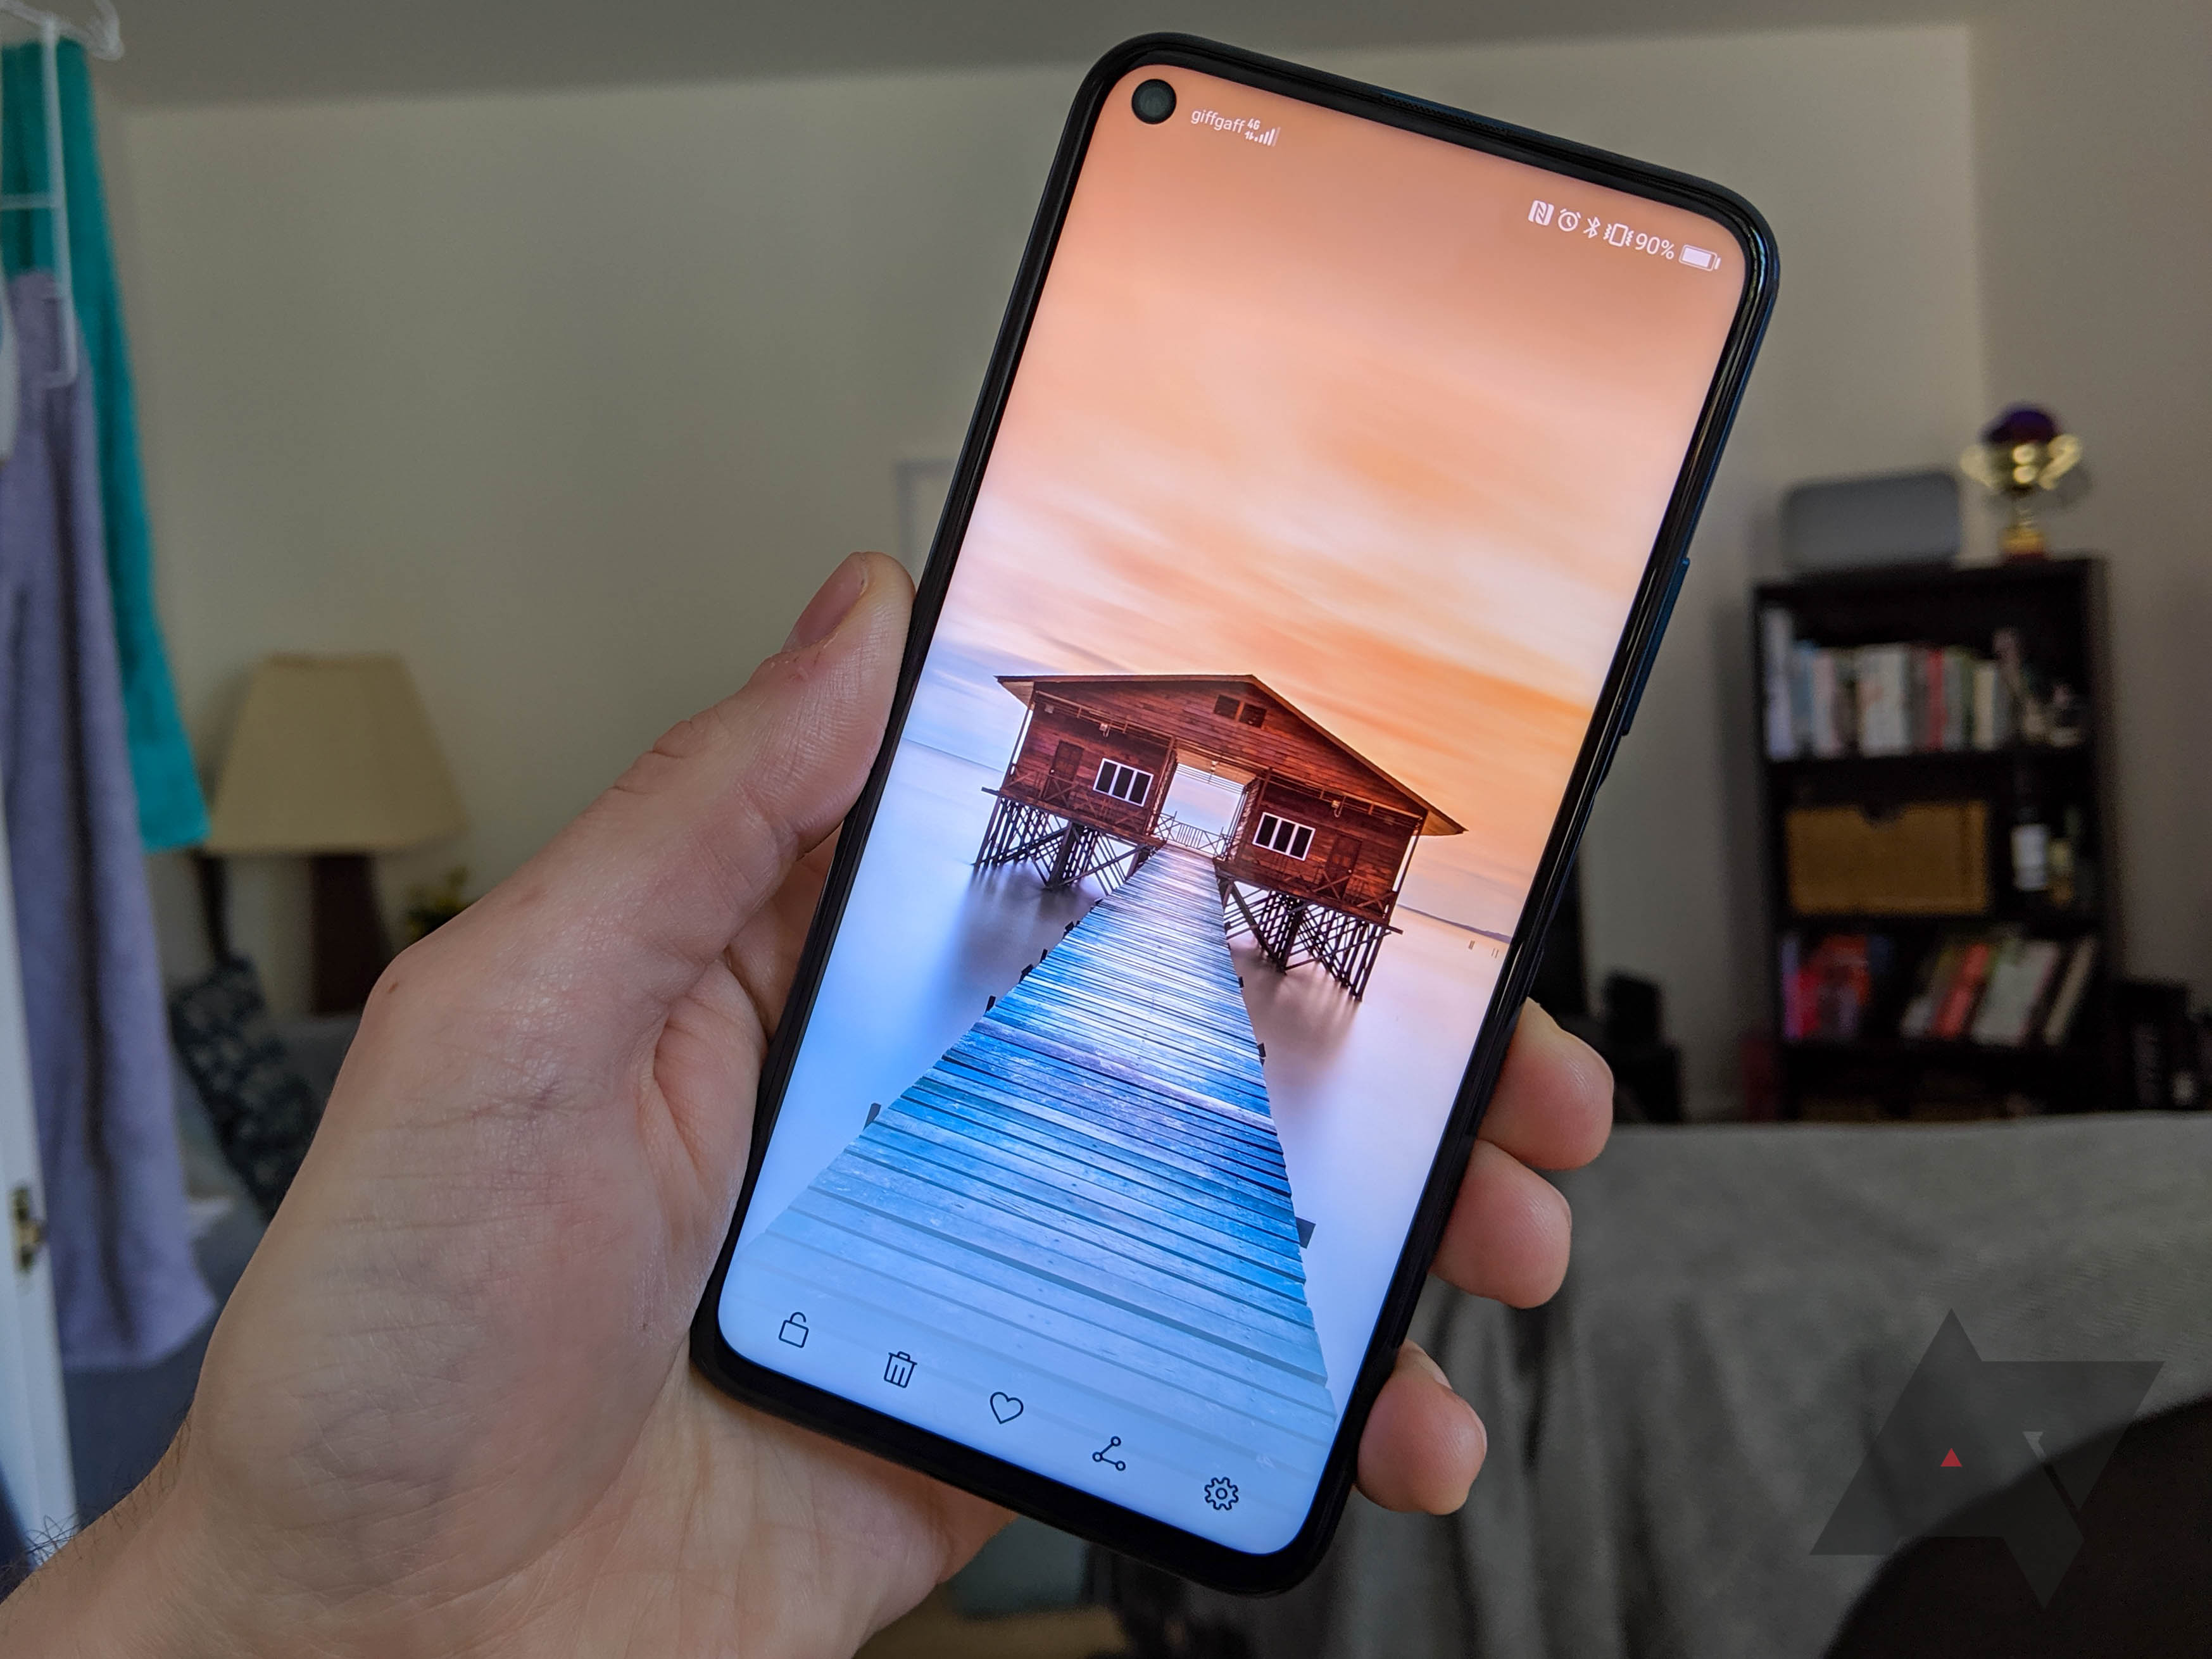 Android 10 beta comes to Honor 20, 20 Pro, and View 20 in the form of Magic UI 3.0